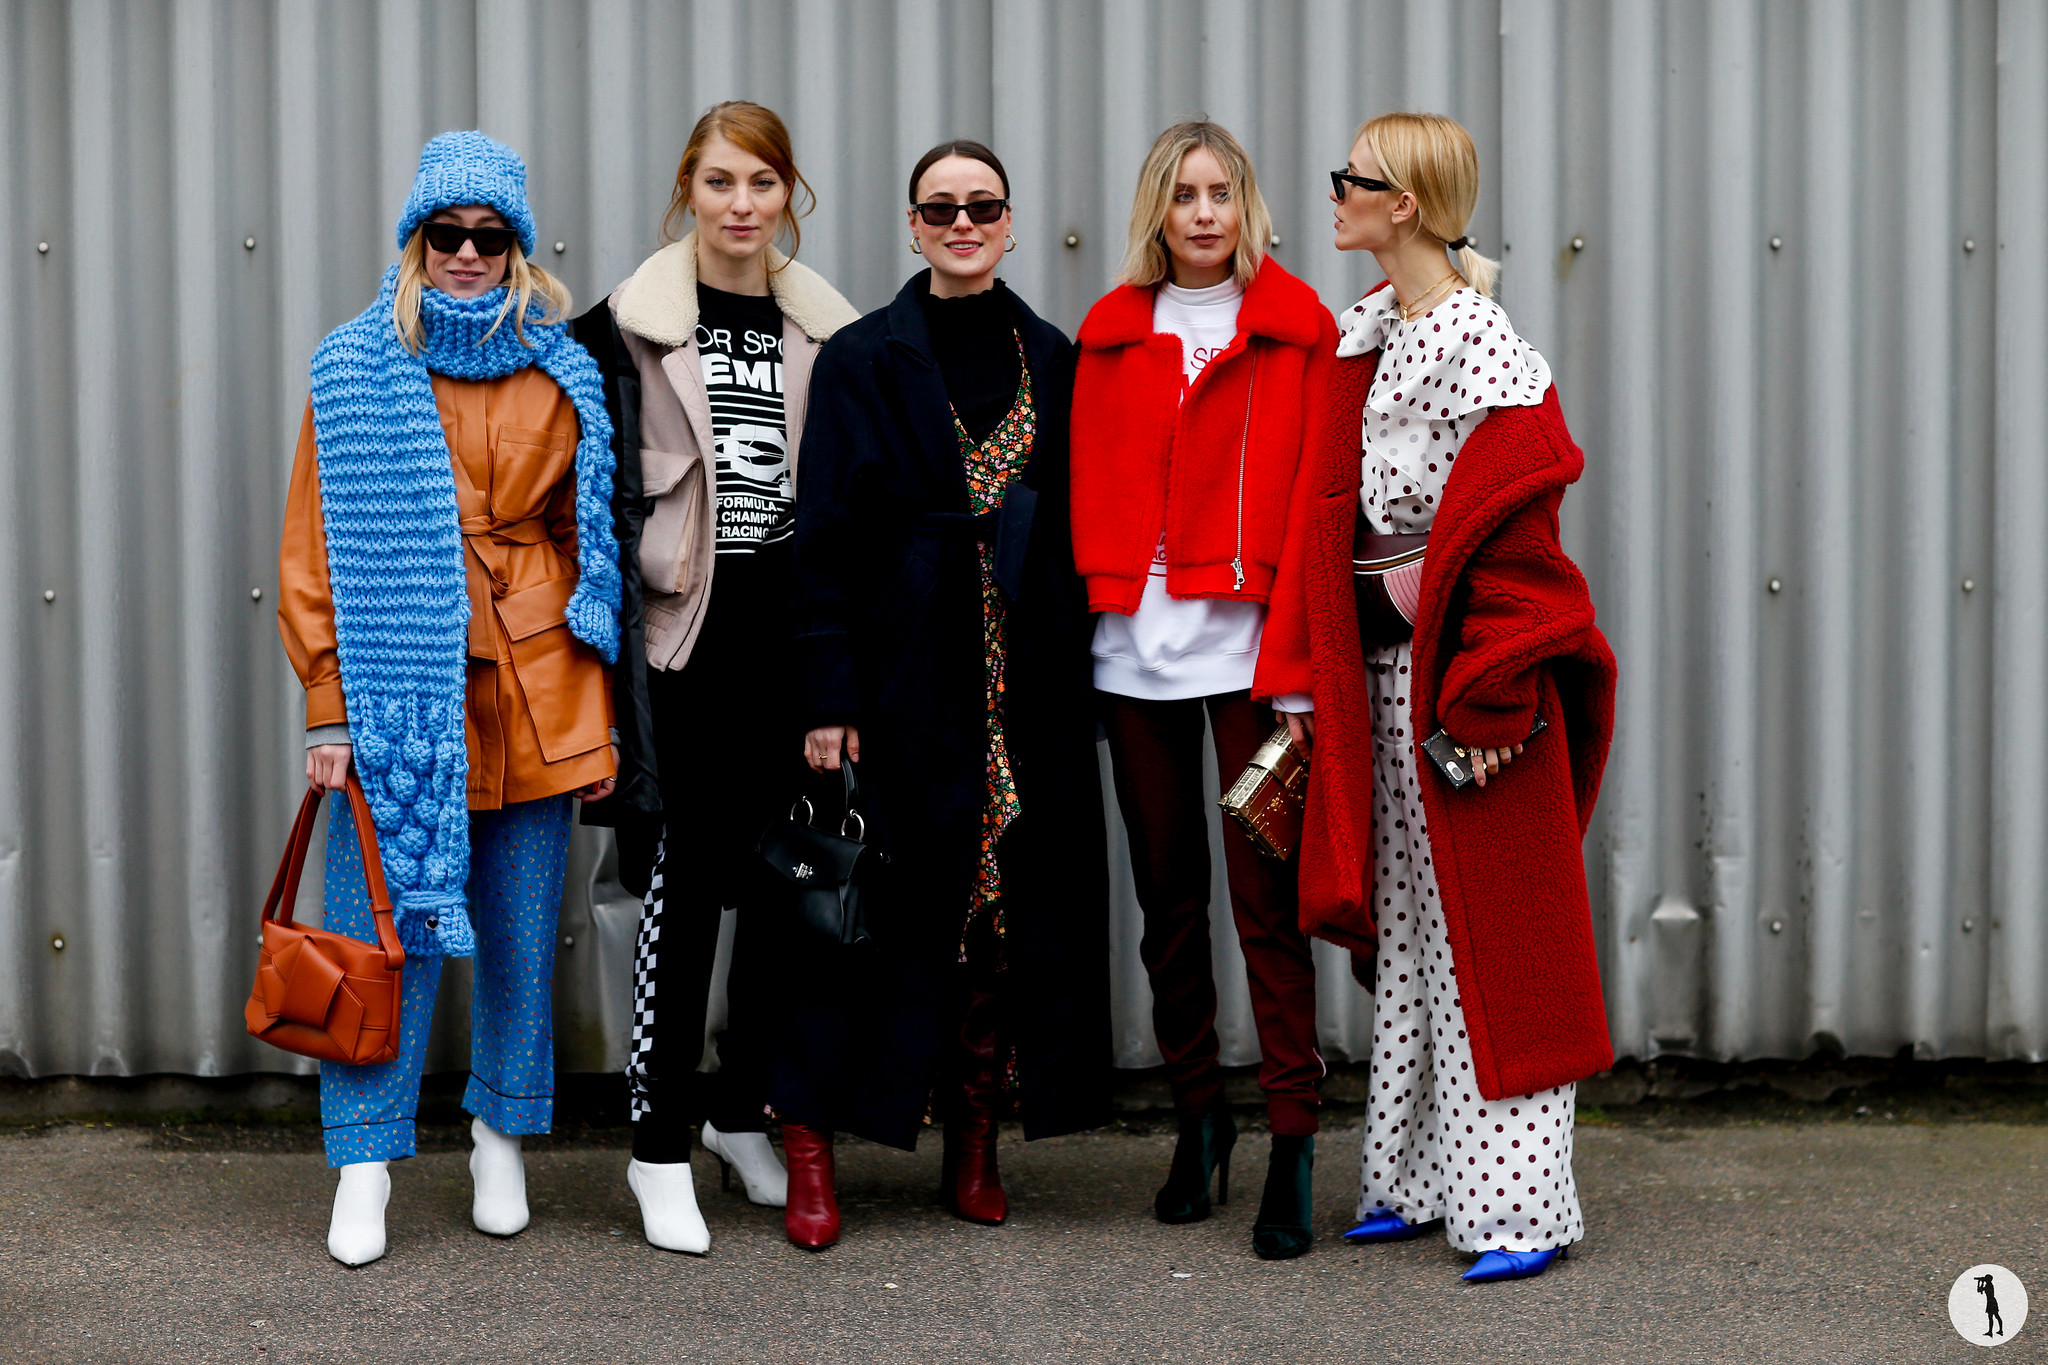 Sonia Lyson, Lisa Banholzer, Lena Lademann, Lisa Hahnbuck and Viktoria Rader - Copenhagen Fashion Week Fall-Winter 2018-2019 (3)